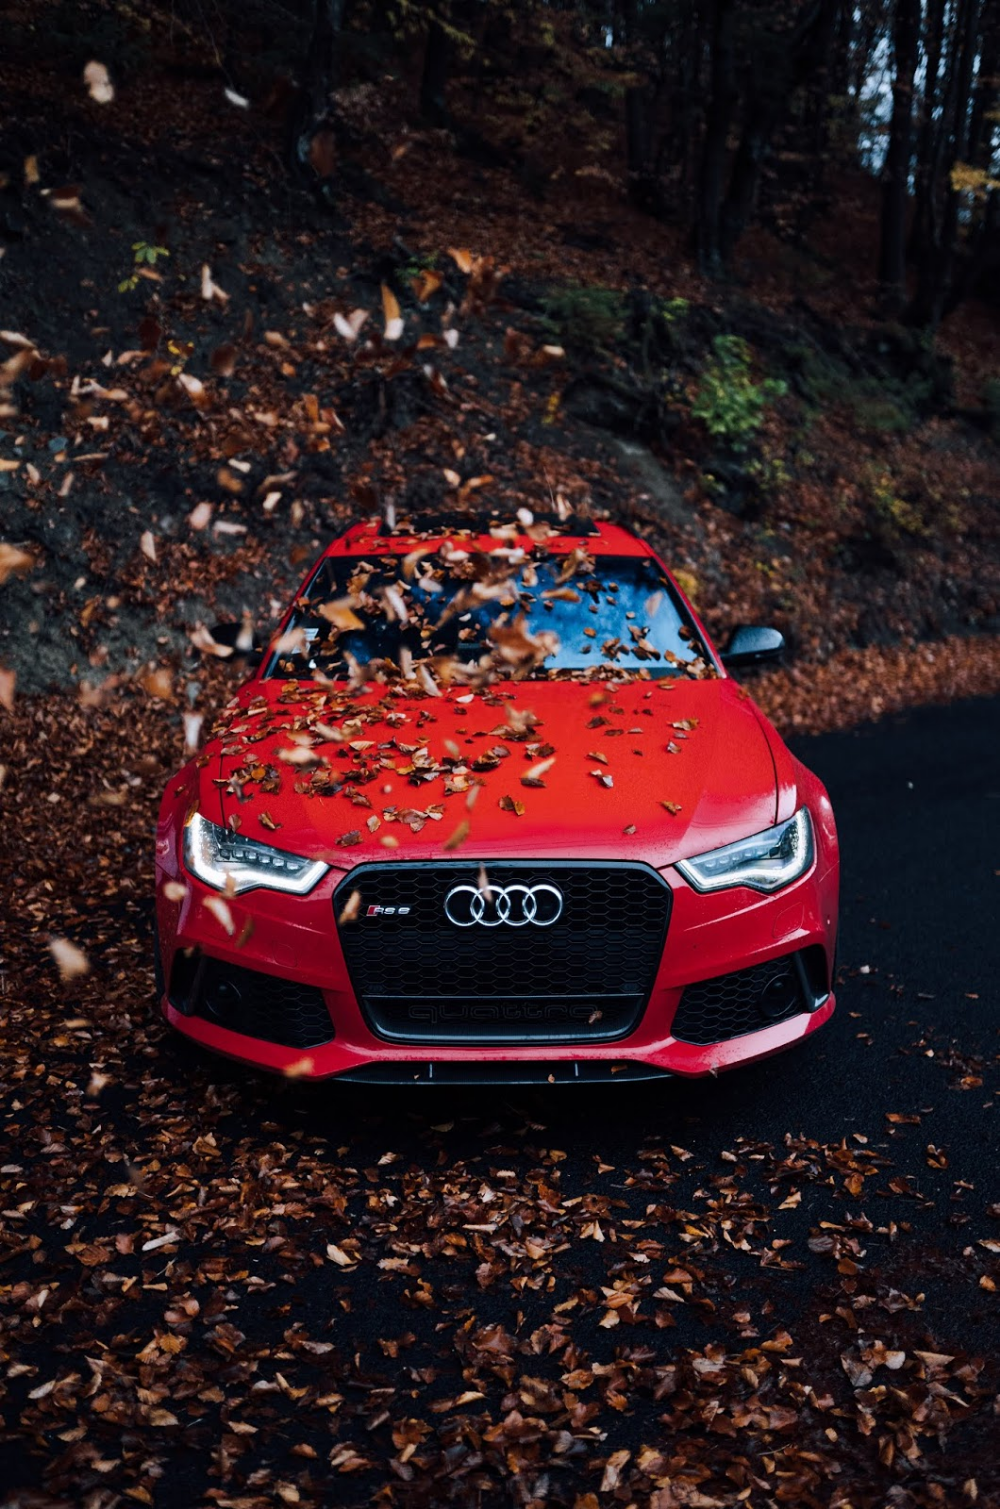 Bulk 4k Car Wallpapers 4k Car Wallpaper In 1920x1080 High Resolutions Free Download Audi Cars Red Audi Car Wallpapers